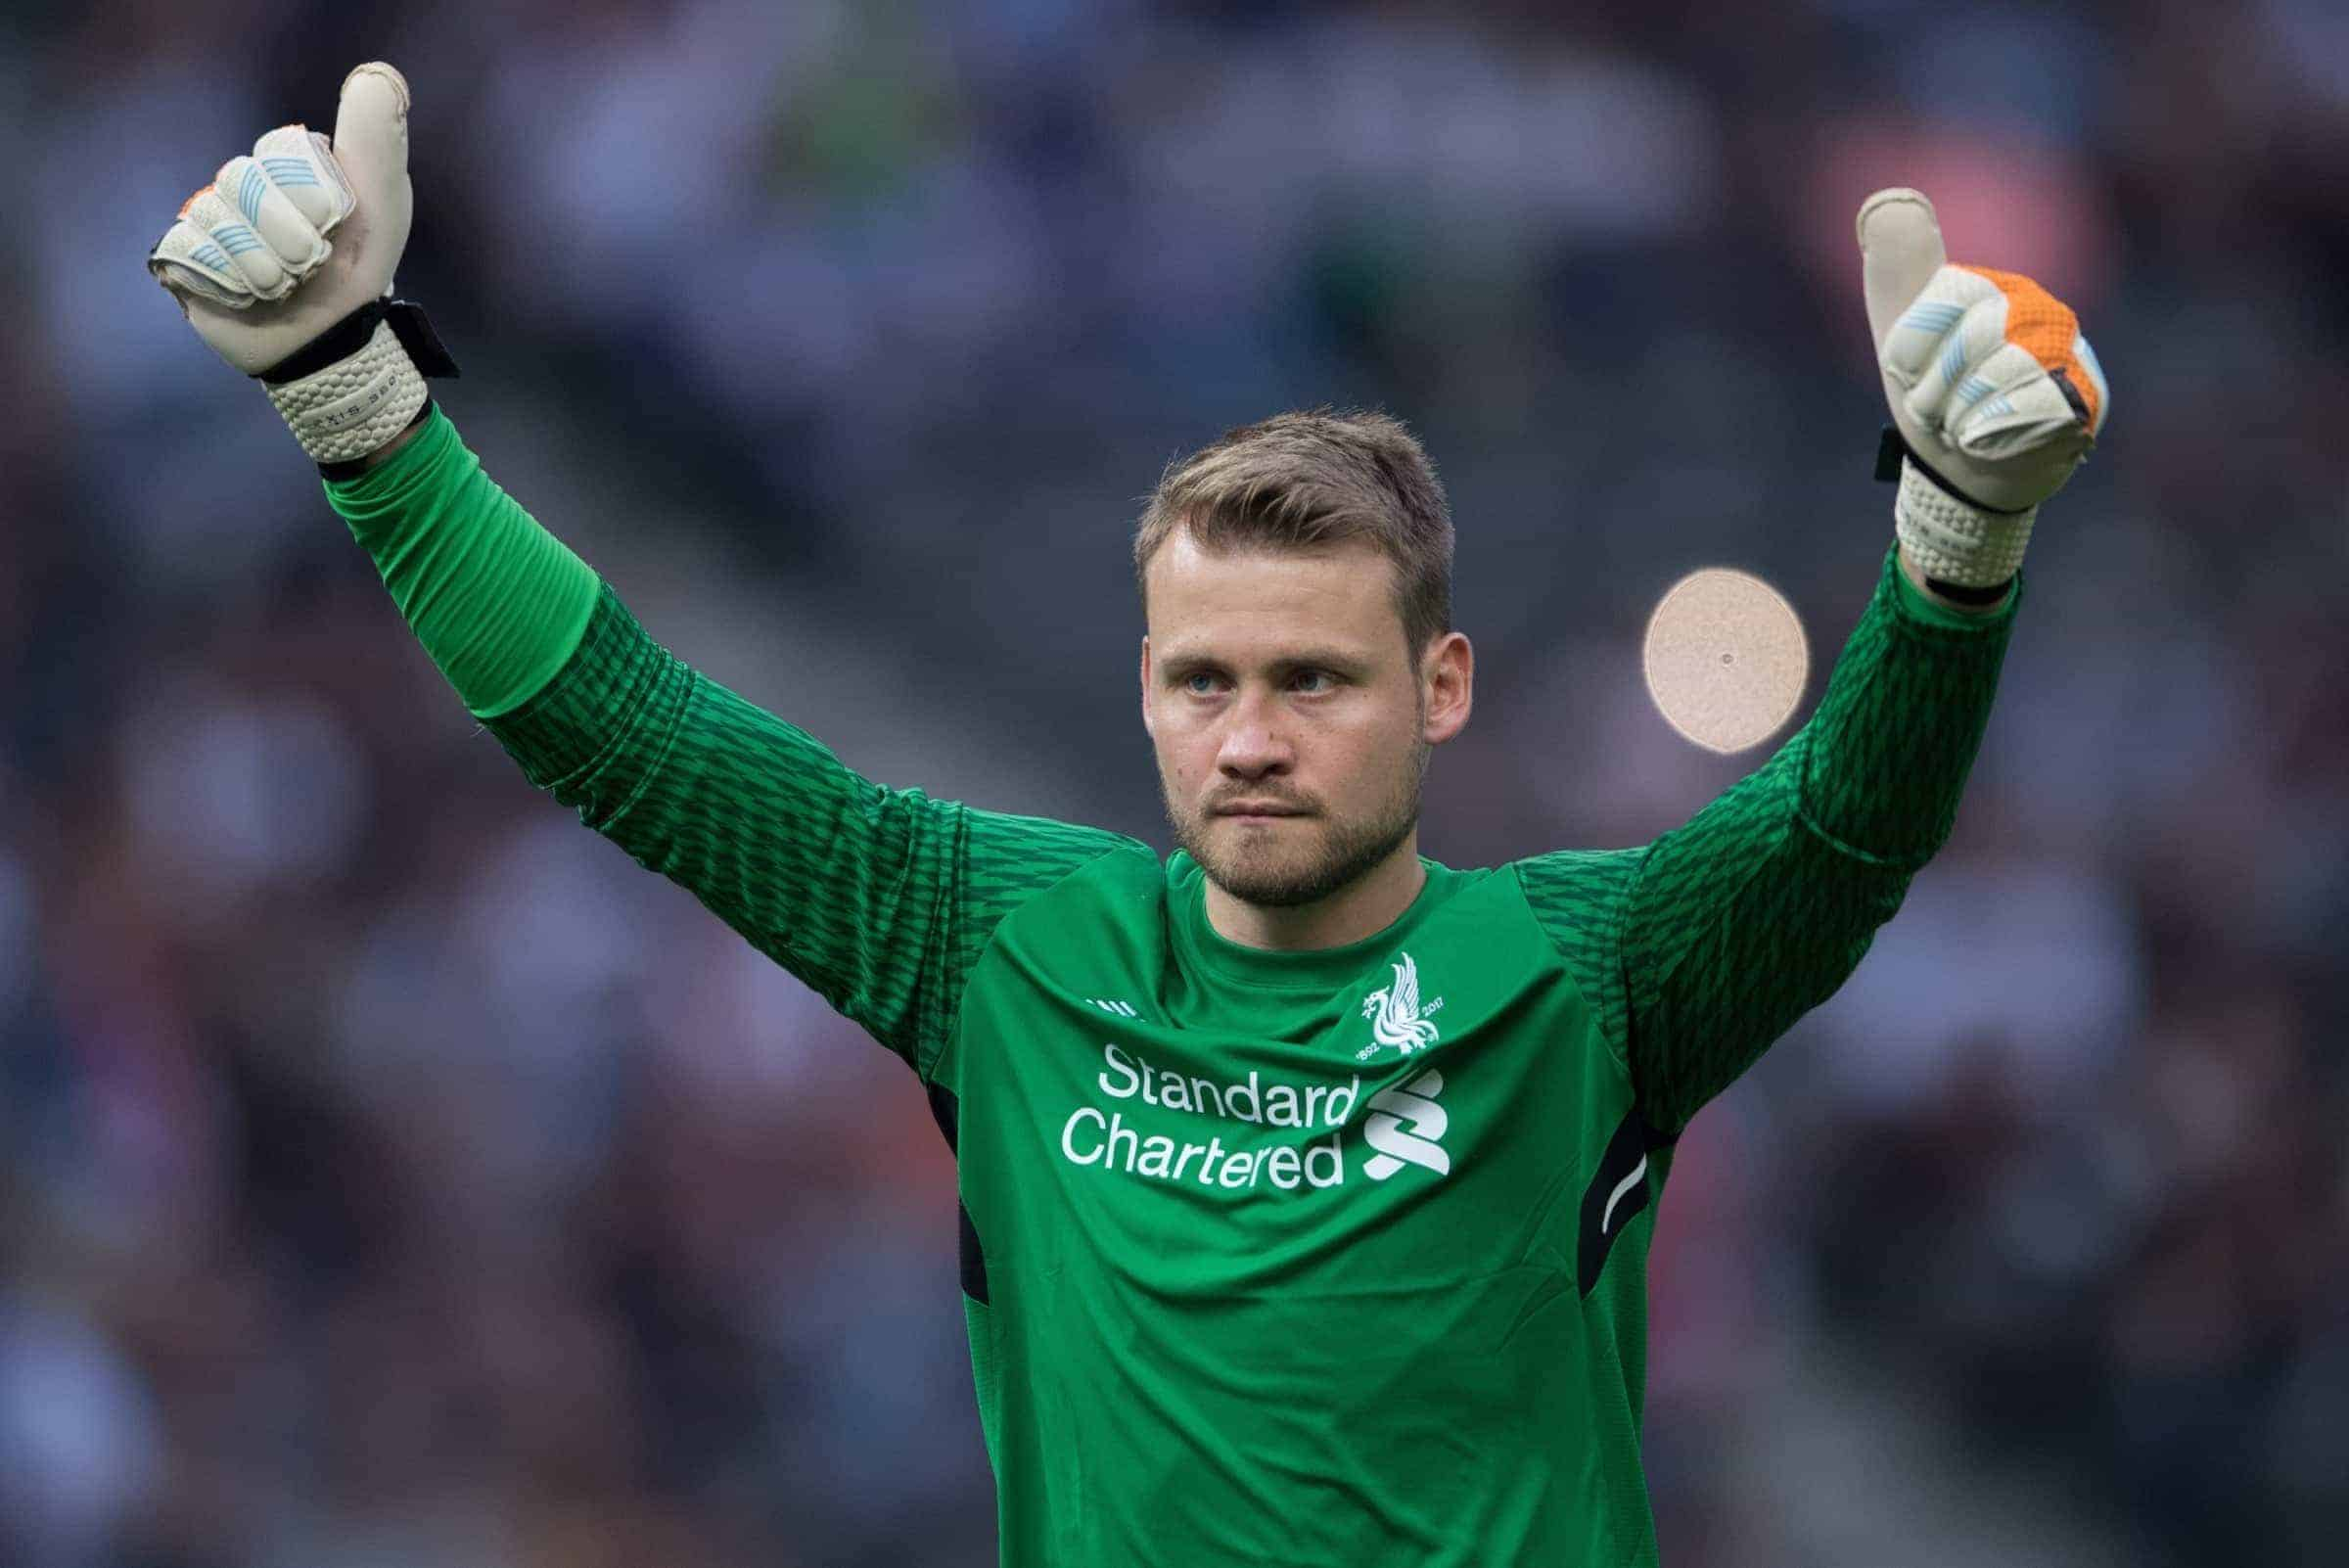 Liverpool's goalkeeper Simon Mignolet gives the thumbs up after his side extend their lead to 3:0 during the international club friendly soccer match between Hertha BSC and FC Liverpool in the Olympia Stadium in Berlin, Germany, 29 July 2017. Photo: Soeren Stache/dpa